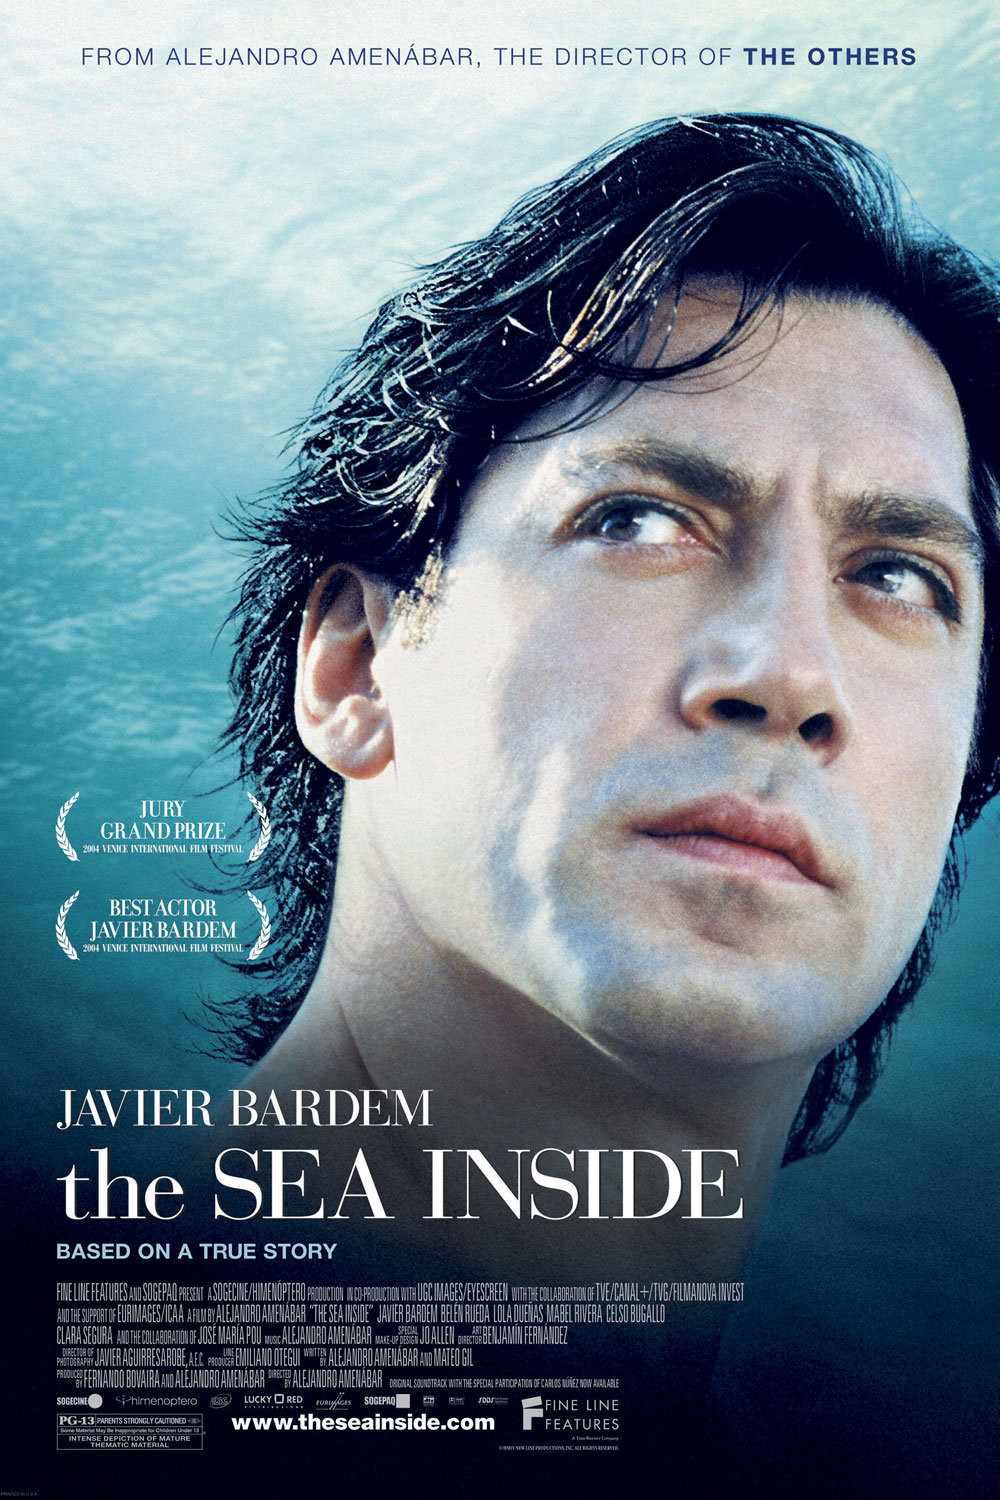 The Sea Inside (2004) - Directed by: Alejandro AmenabarStarring: Javier Bardem, Belén Rueda, Lola DueñasRated: PG-13Running Time: 2h 5mTMM Score: 4 StarsSTRENGTHS: Themes and ActingWEAKNESSES: None